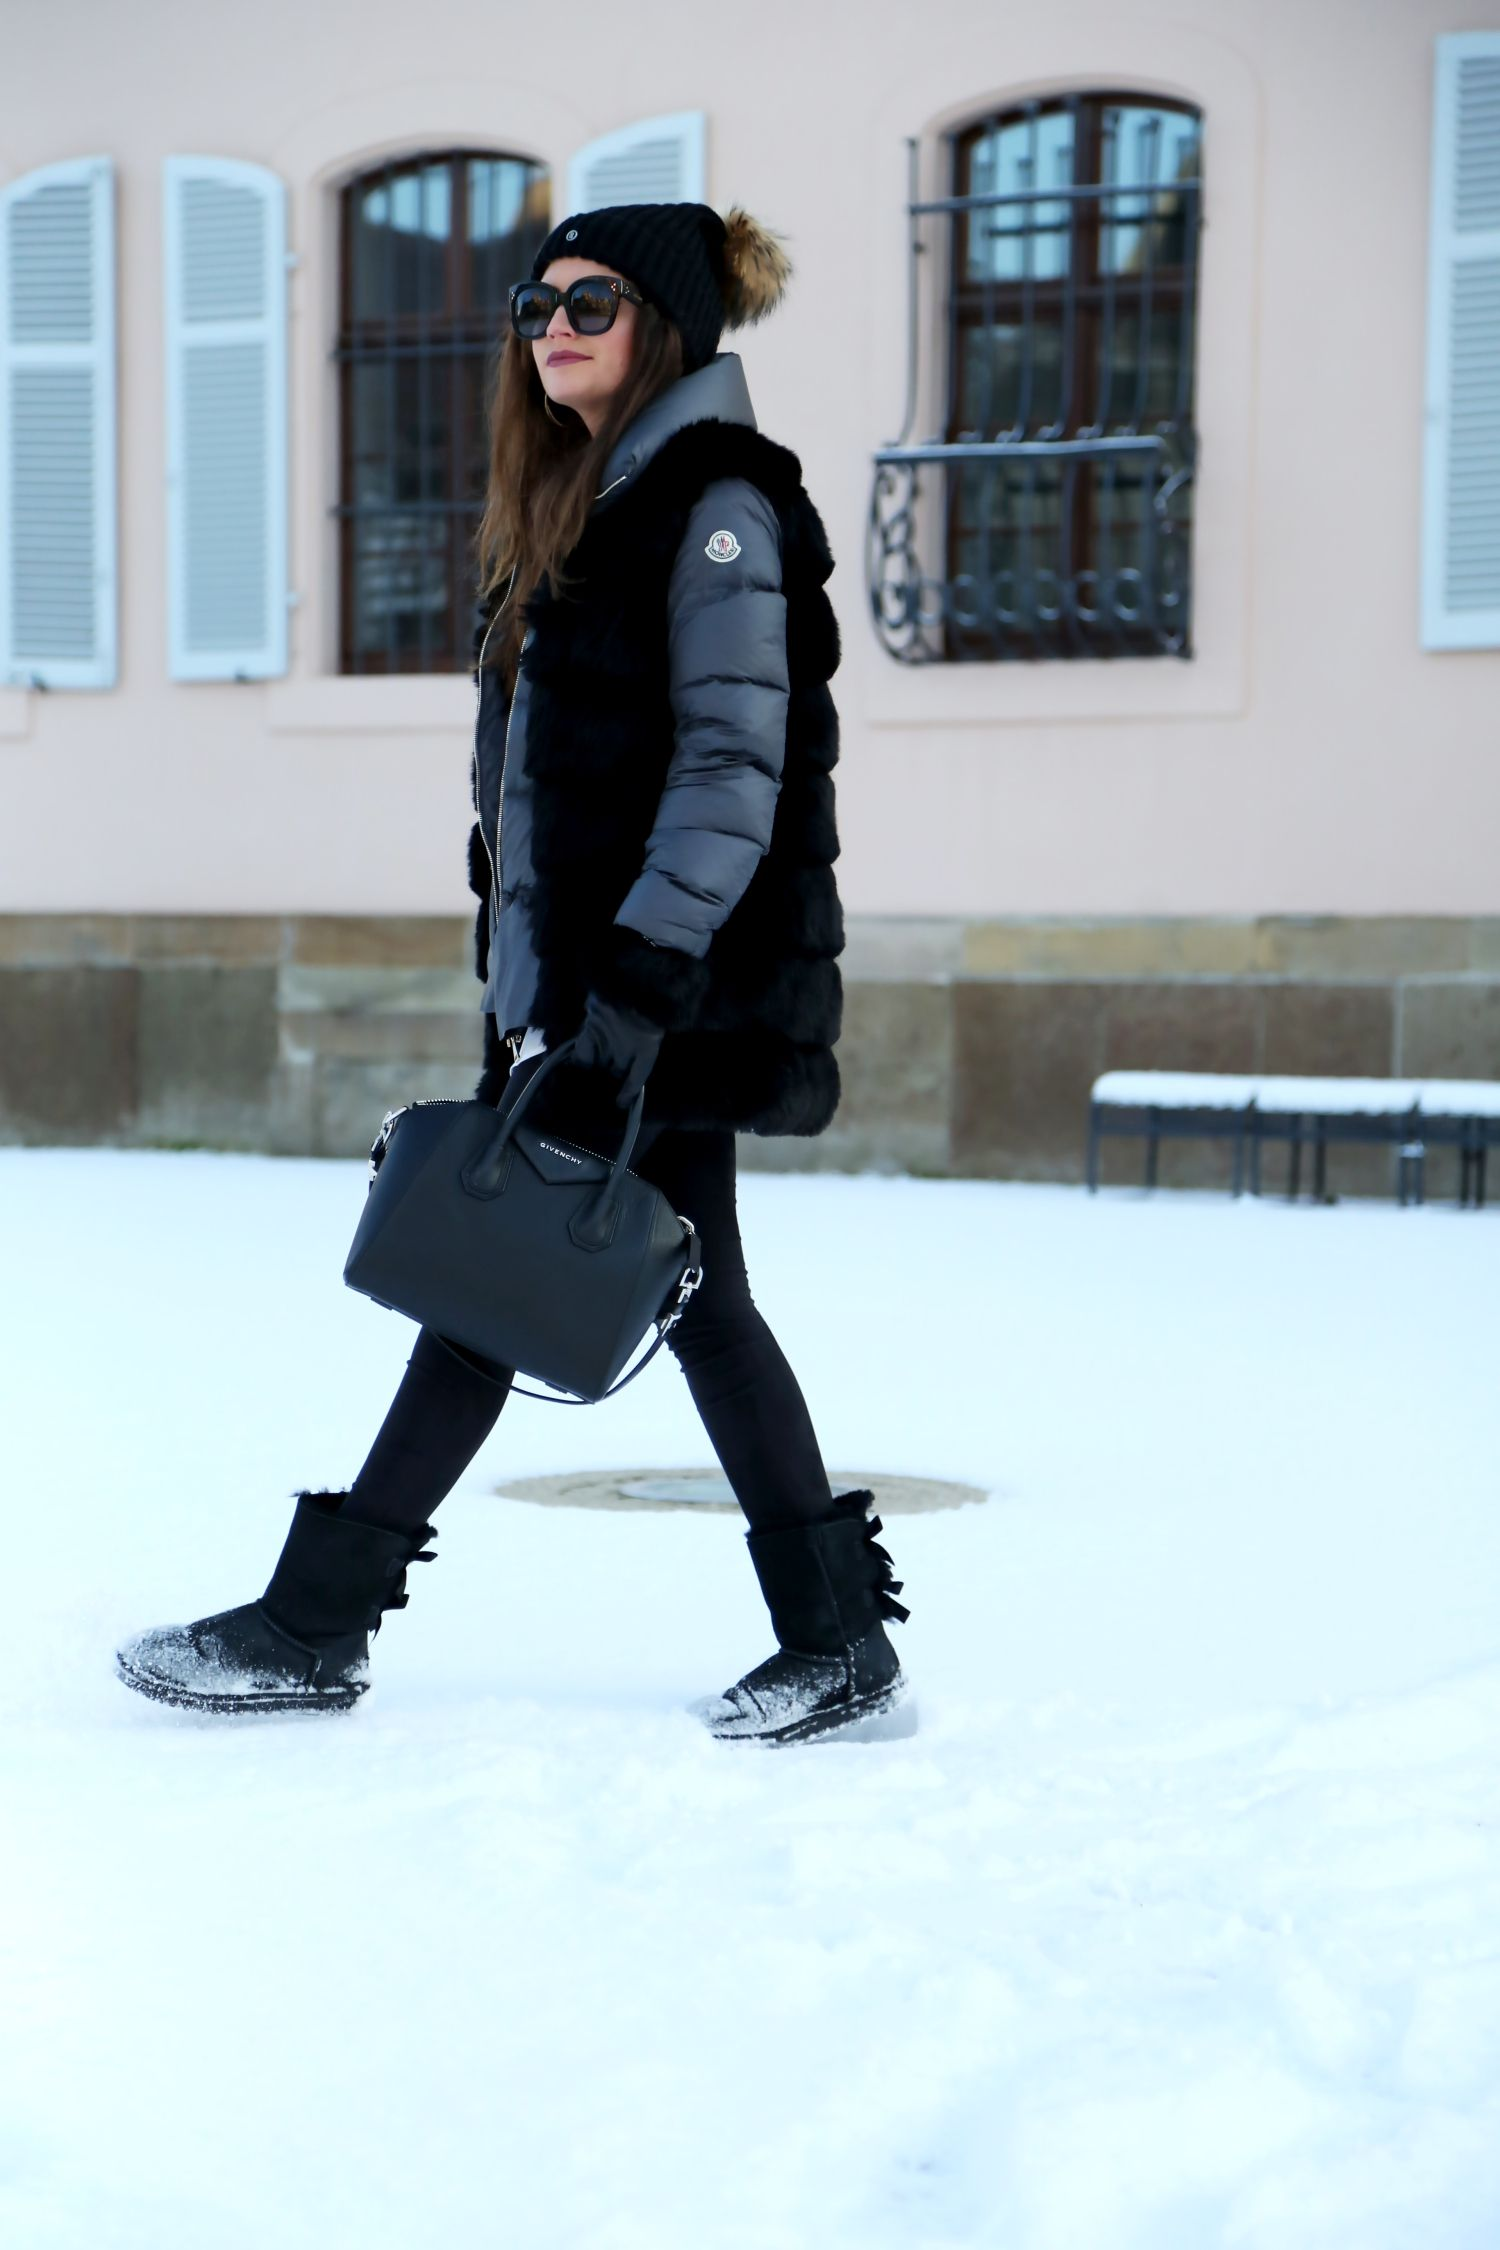 0f8c6b12e29 winter outfit: Cozy and warm | Recreate | Winter jackets, Winter ...